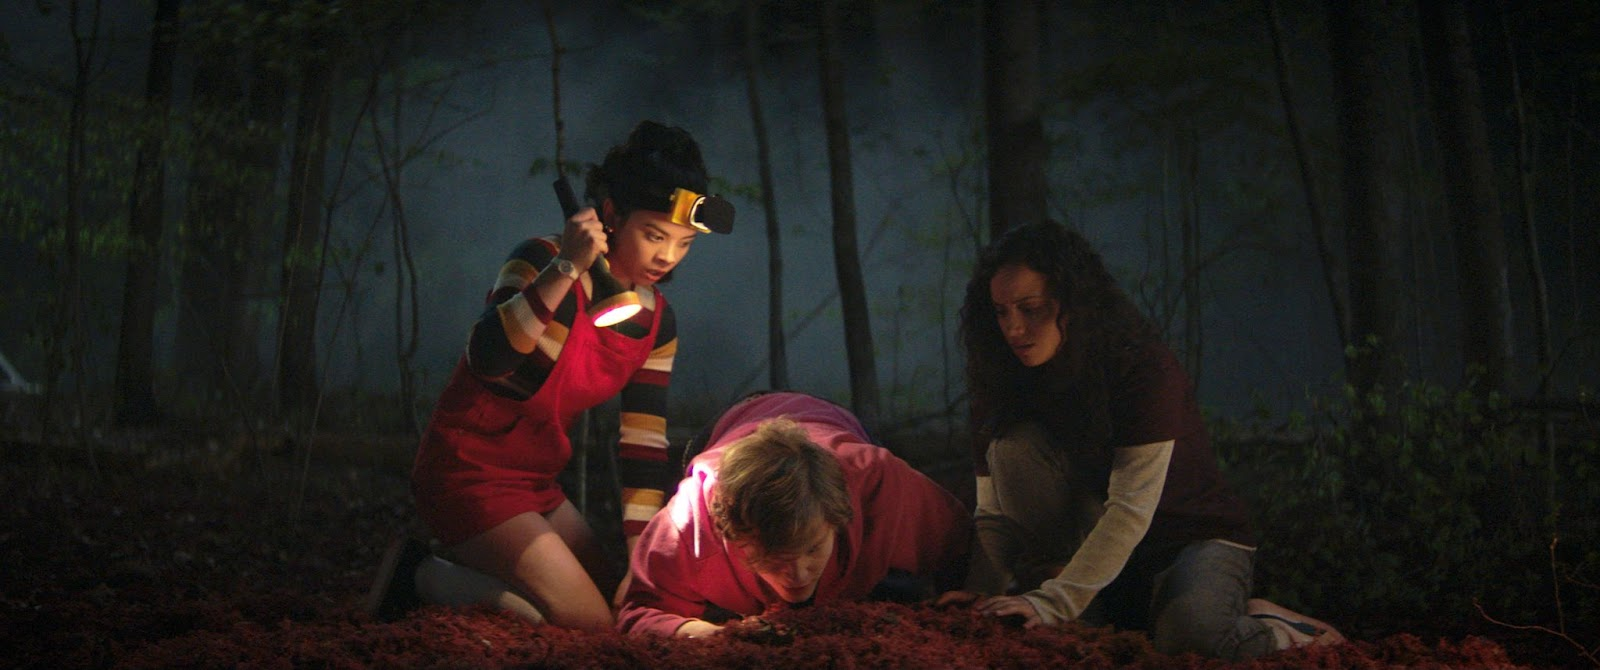 From left, Rehwald as Kate, Fred Hechnger as Simon and Madeira as Deena. They are crouching in a dark forest: Kate holding a large flashlight. Courtesy of Netflix.